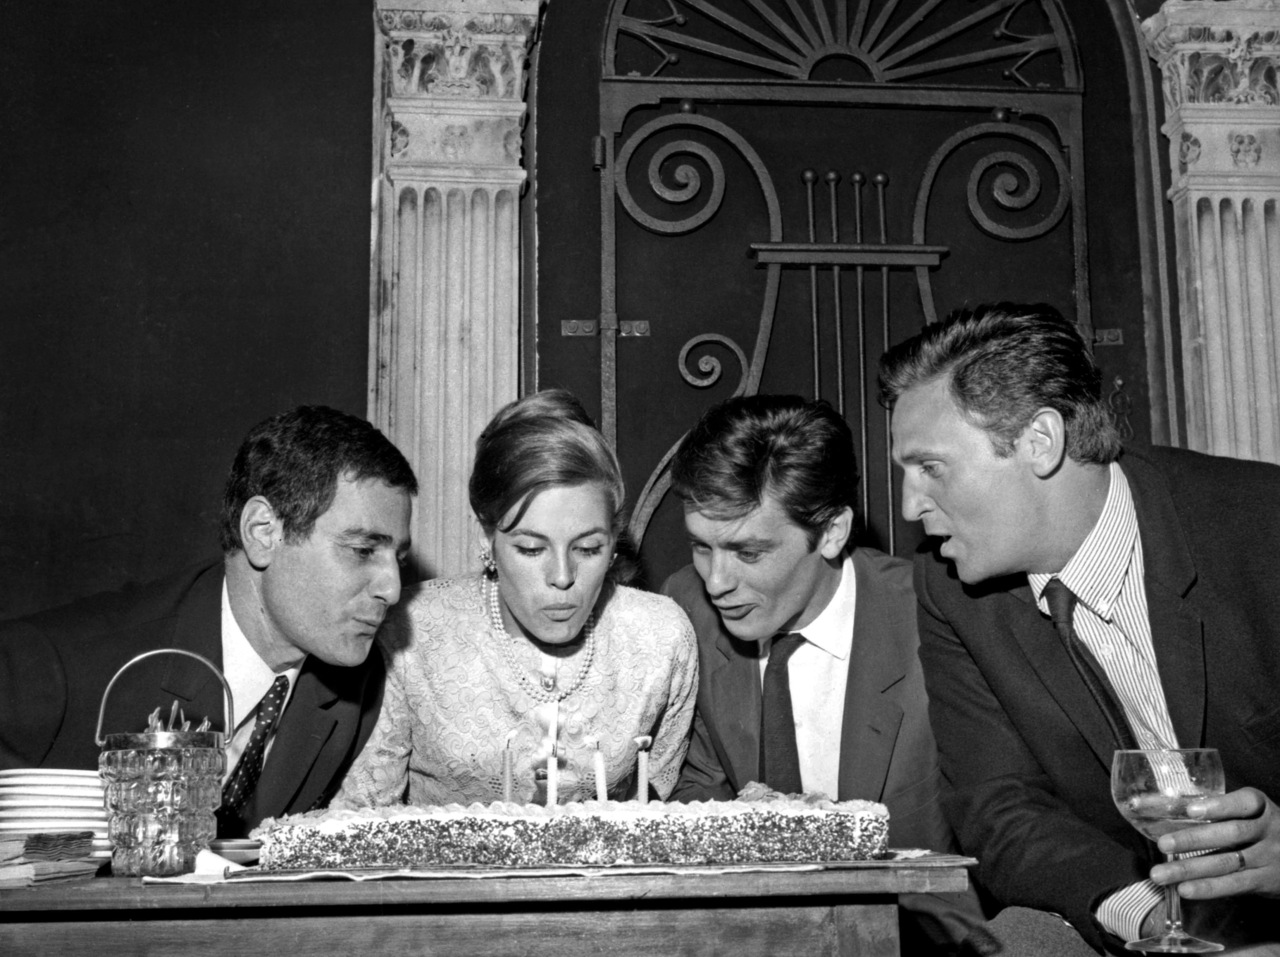 With Jean Delly, Nathalie and Roger Hanin, 1965.